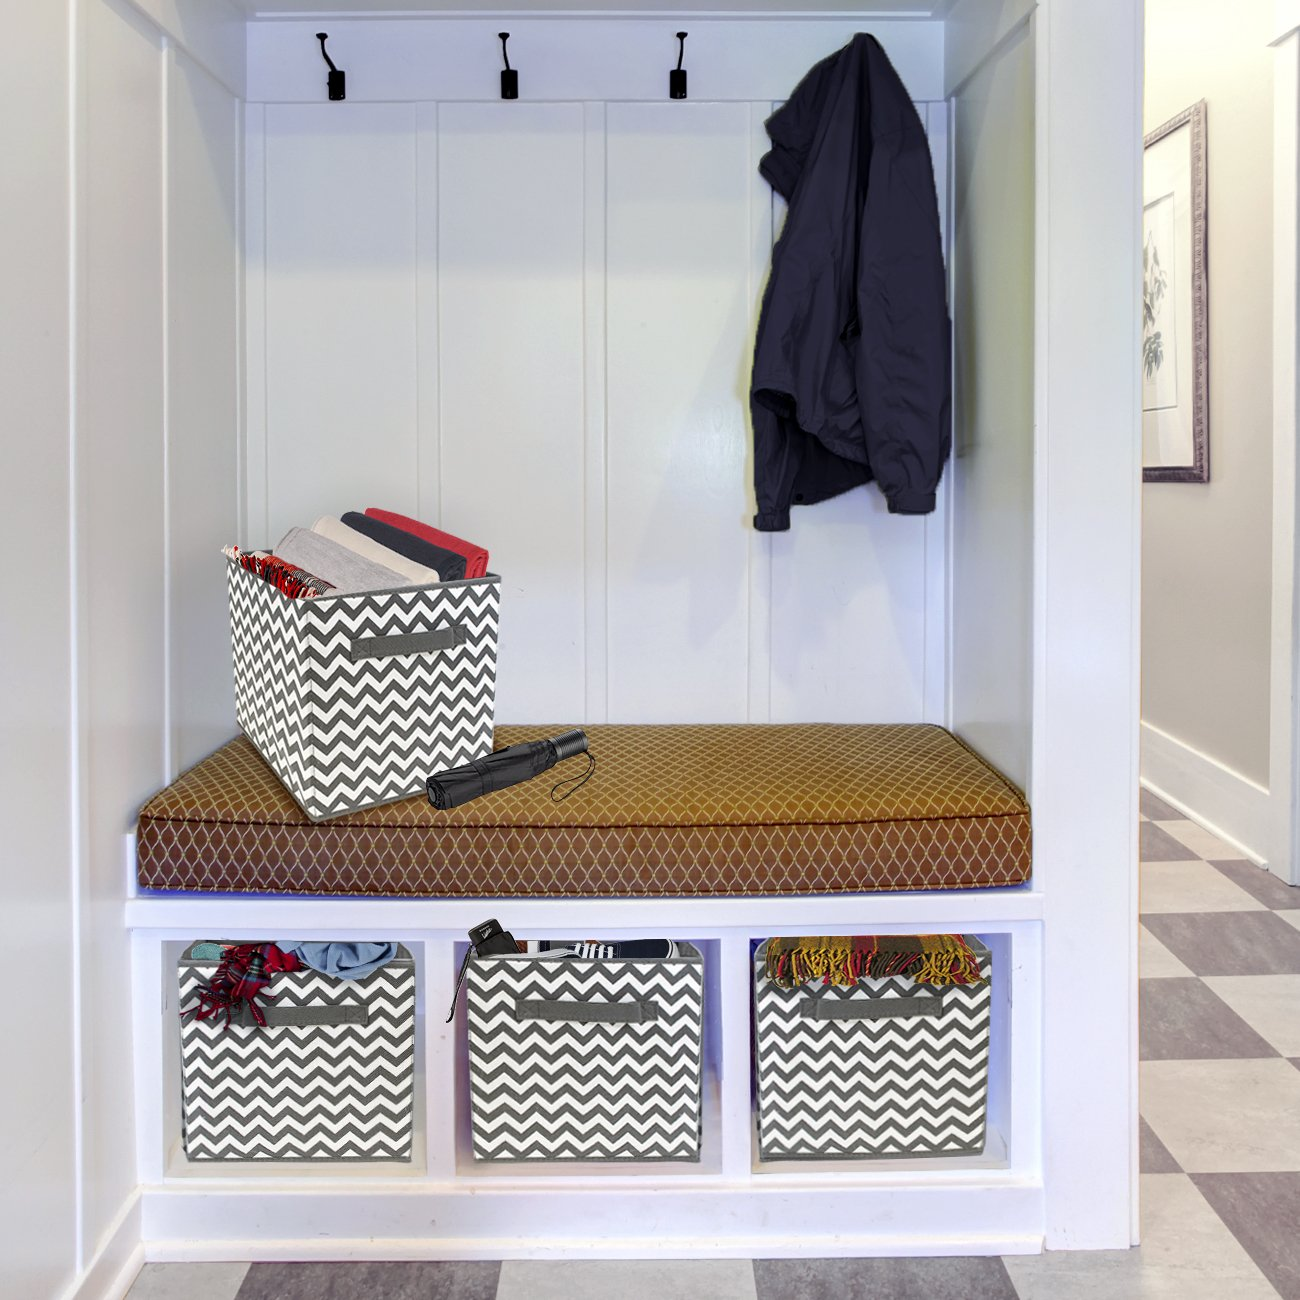 The Best Storage Container Sets (& Baskets) For Your Bathroom: Reviews & Buying Guide 12